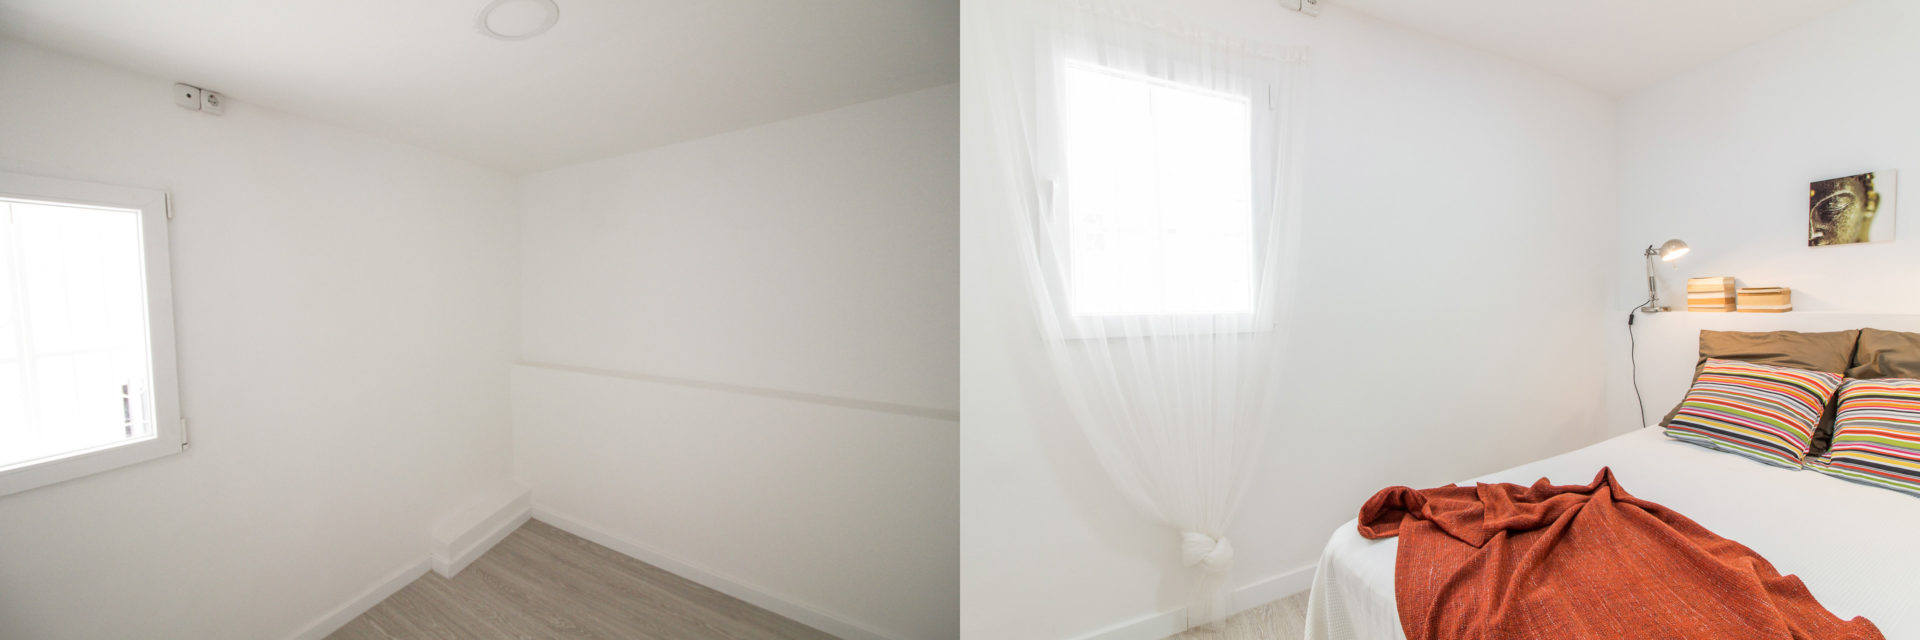 home staging raval dormitori cartro finestra foto abans despres